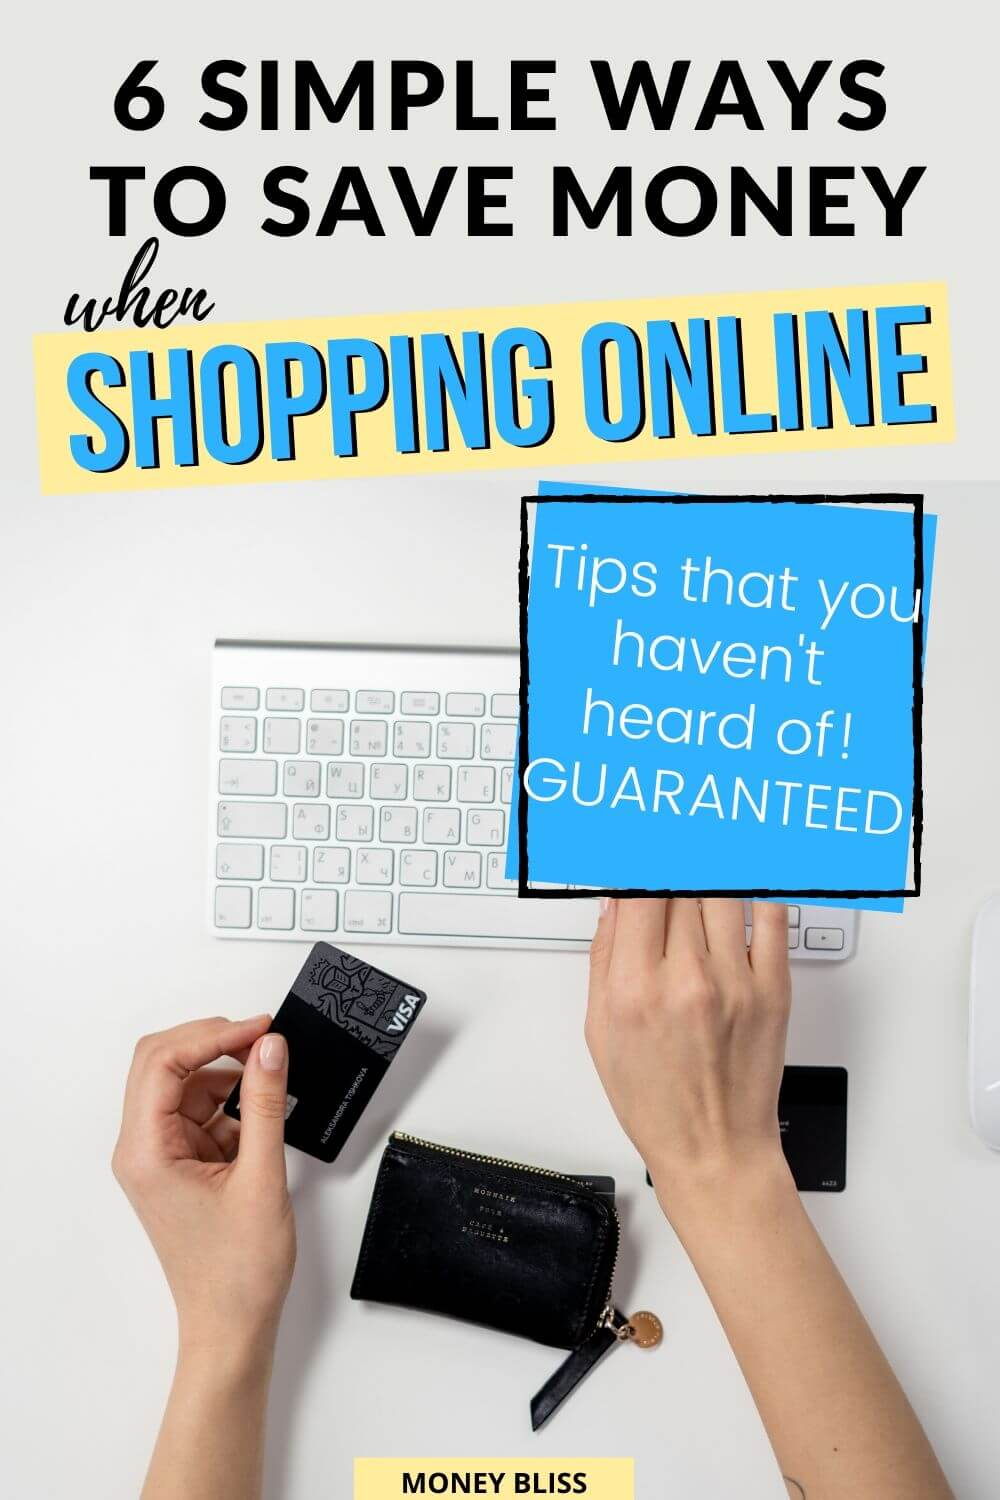 Let's face it… you spend a lot of time shopping online. It is time to learn these money saving hacks to saving money. Does shopping online save money? Yes! You need these saving money tips to make sure you are saving the most money possible on things you naturally buy. Frugal living isn't needed. You just need to be smart on how you shop.